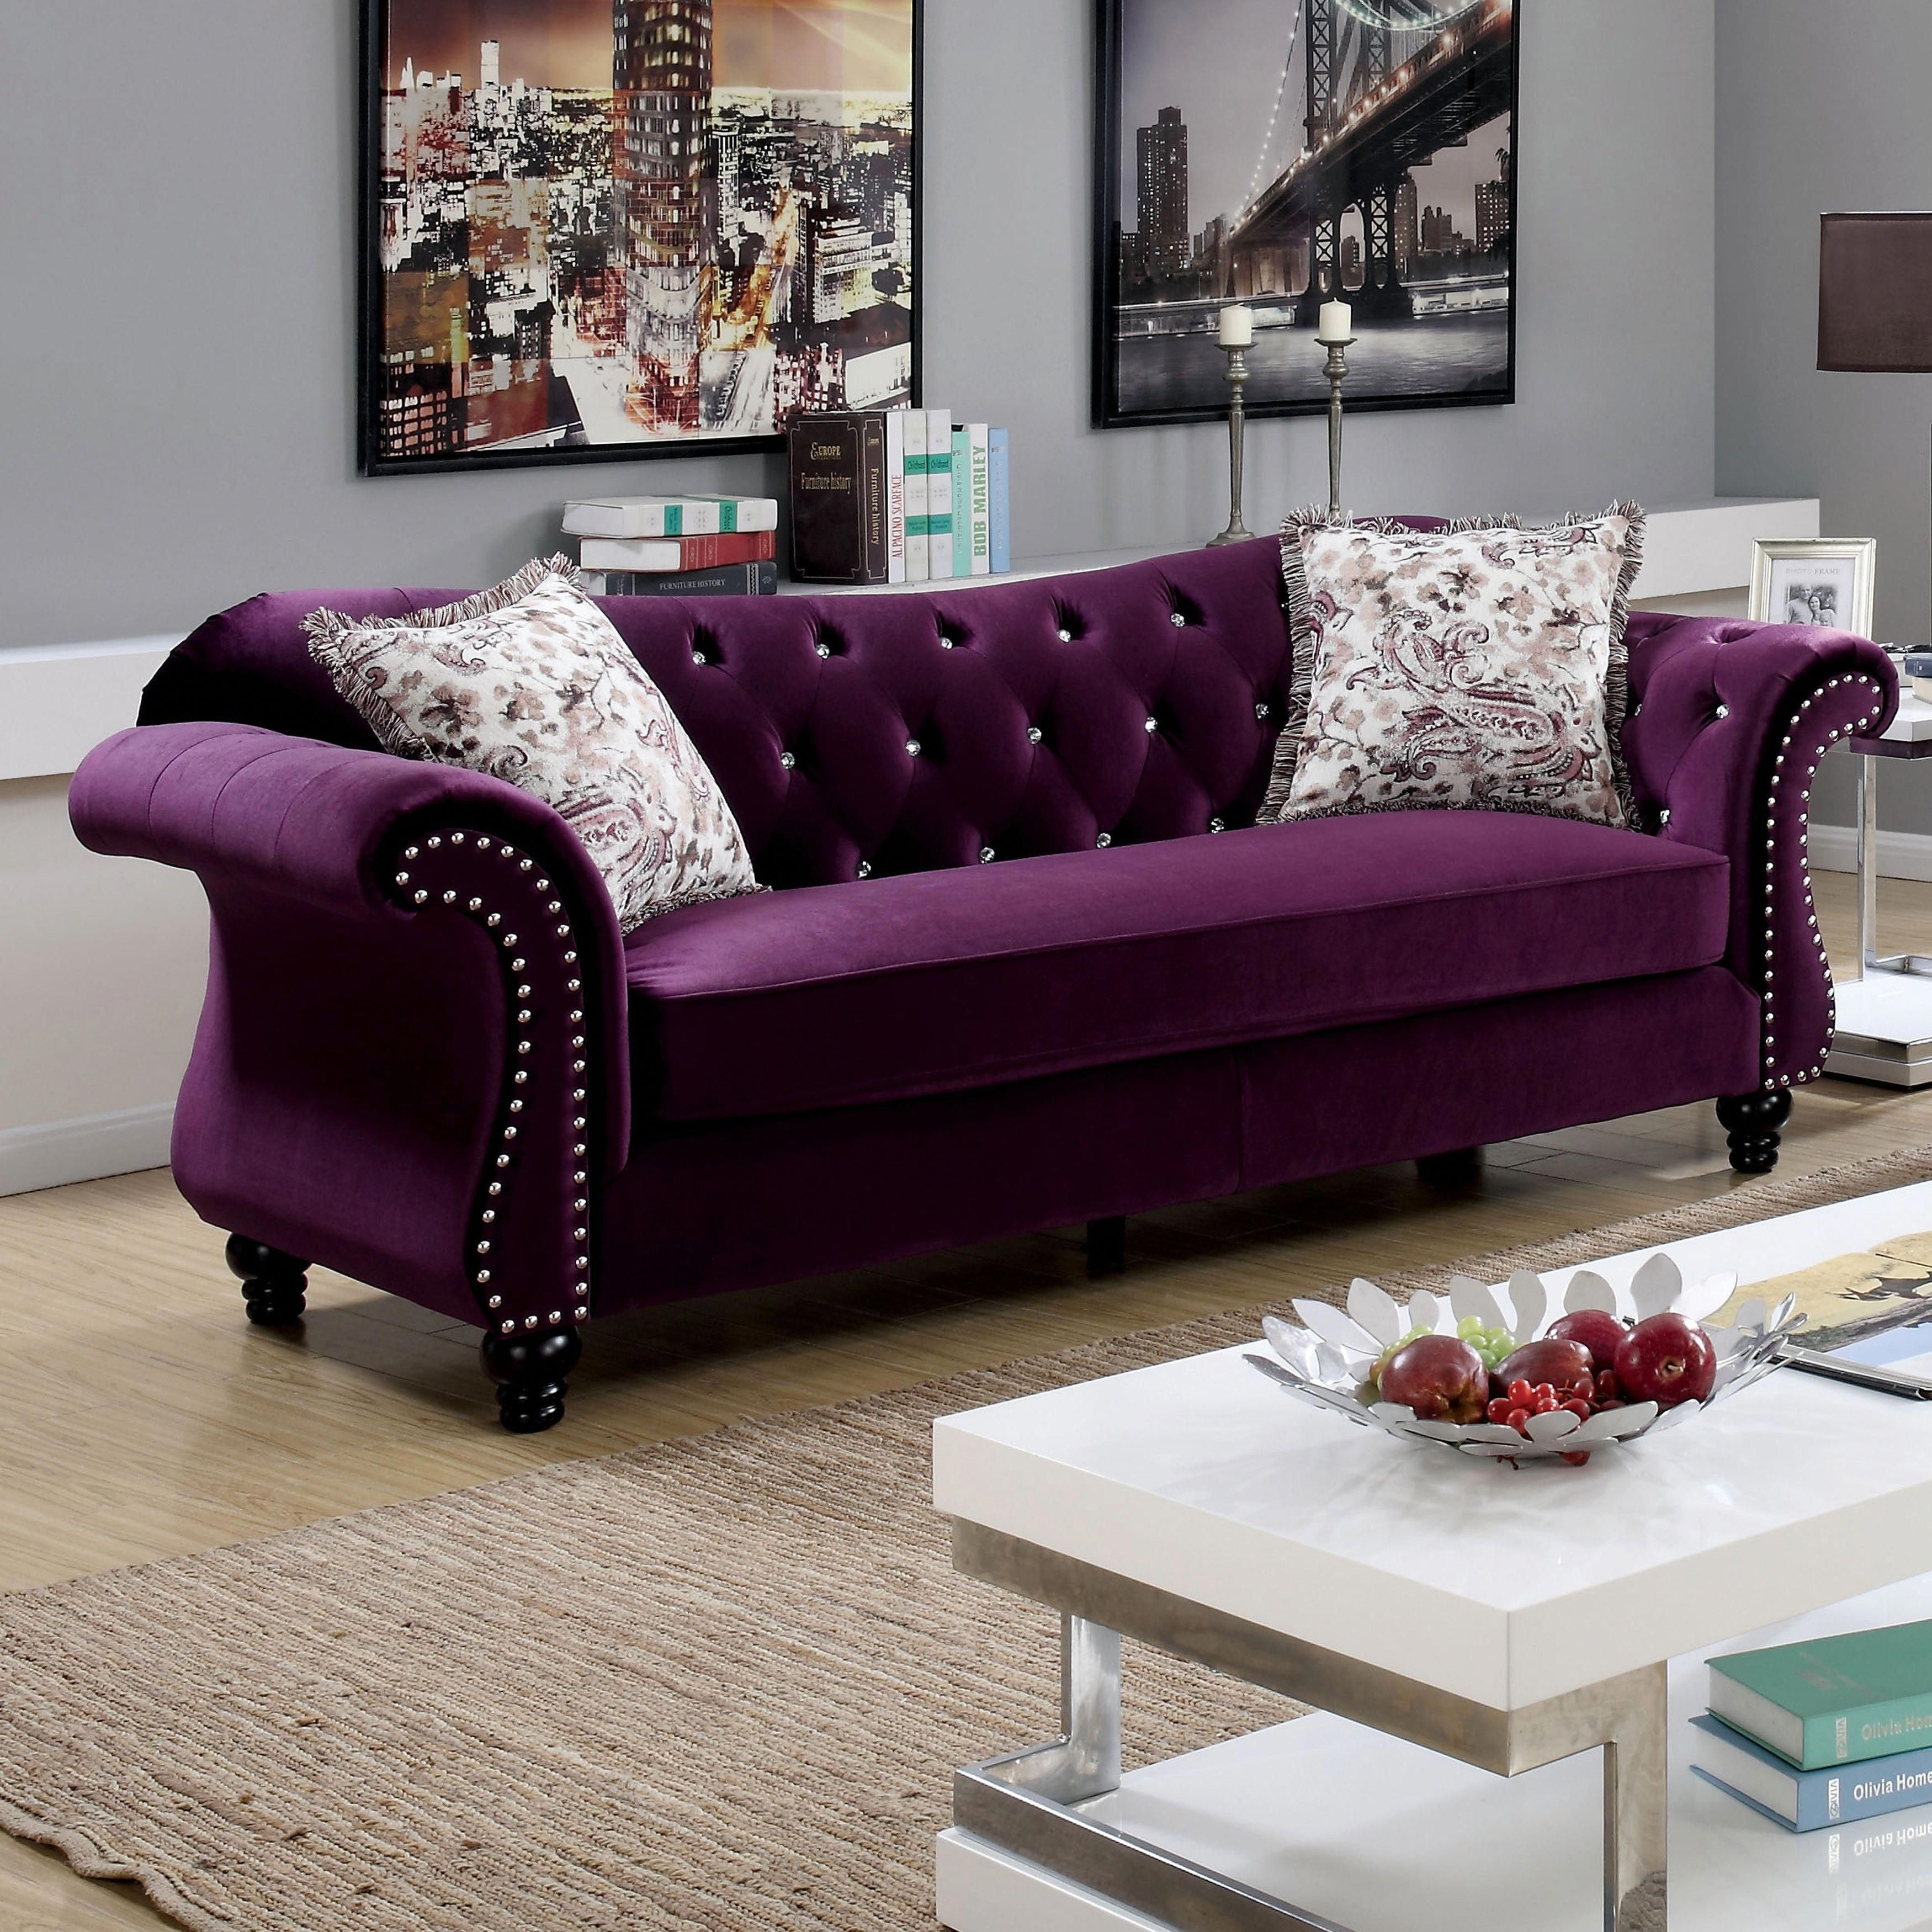 Furniture Of America Dessie Traditional Tufted Sofa Grey Acrylic Sillonesmodernos Purple Living Room Purple Furniture Living Room Collections